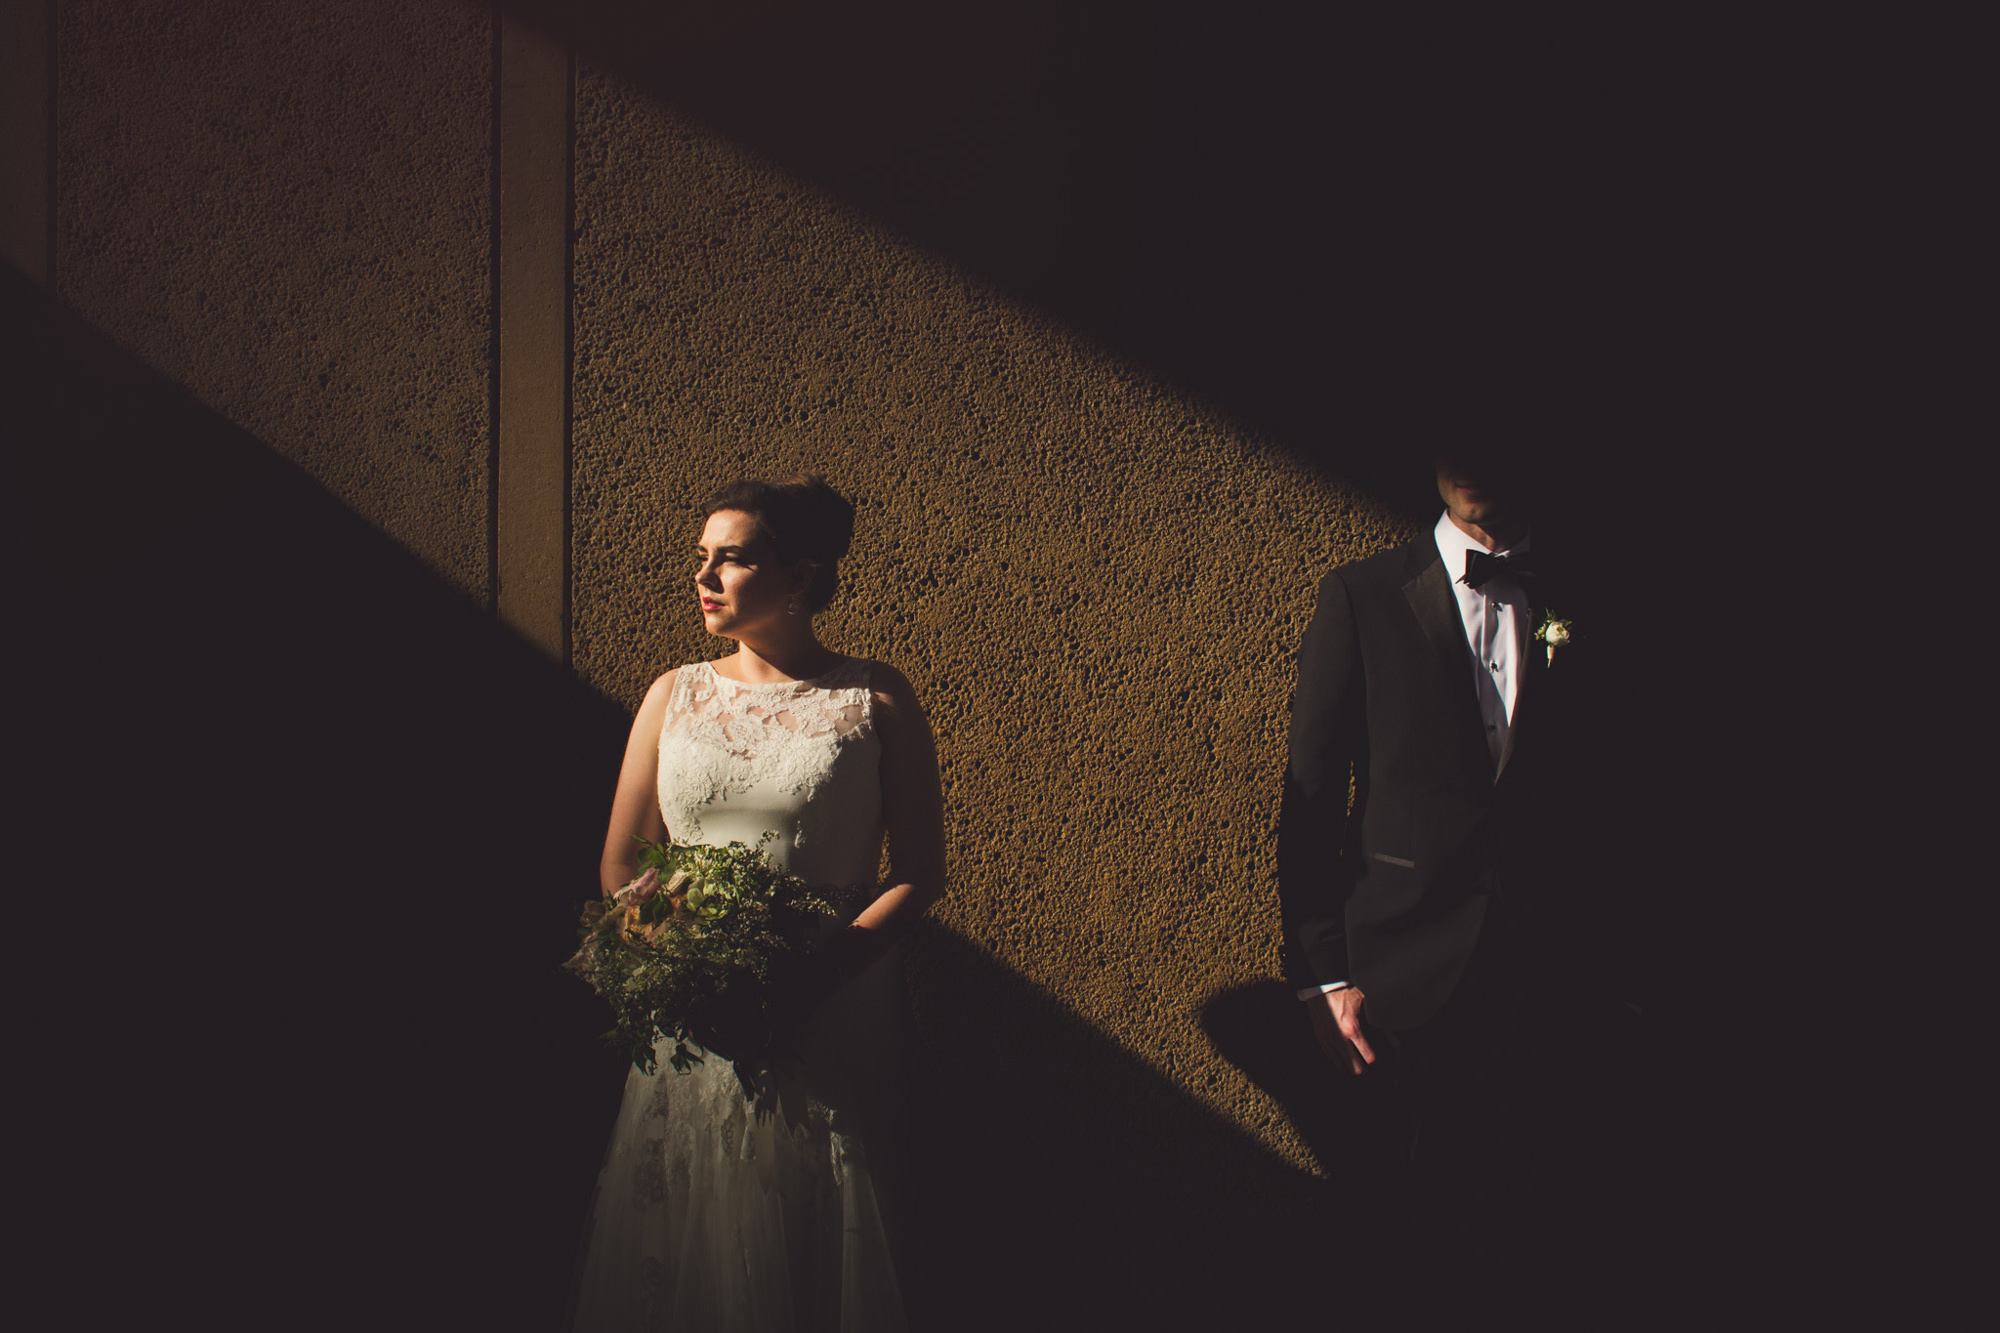 Creative light and shadow portrait of bride and groom, by Jeff Newsom